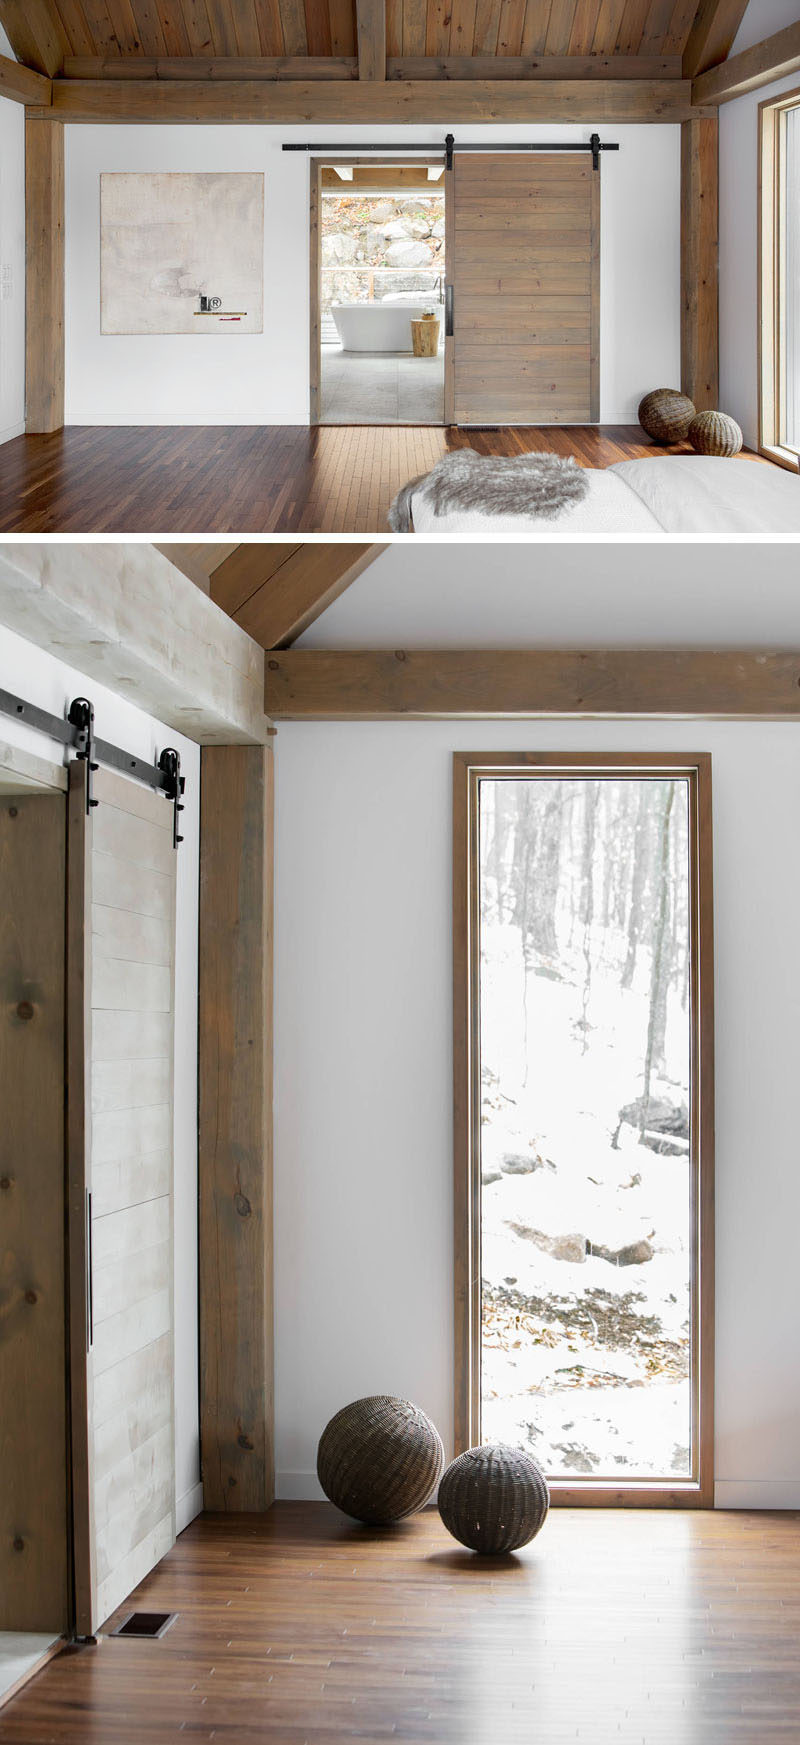 The wood on this sliding door matches the wood used for the beams in the bedroom and creates a look of continuity.